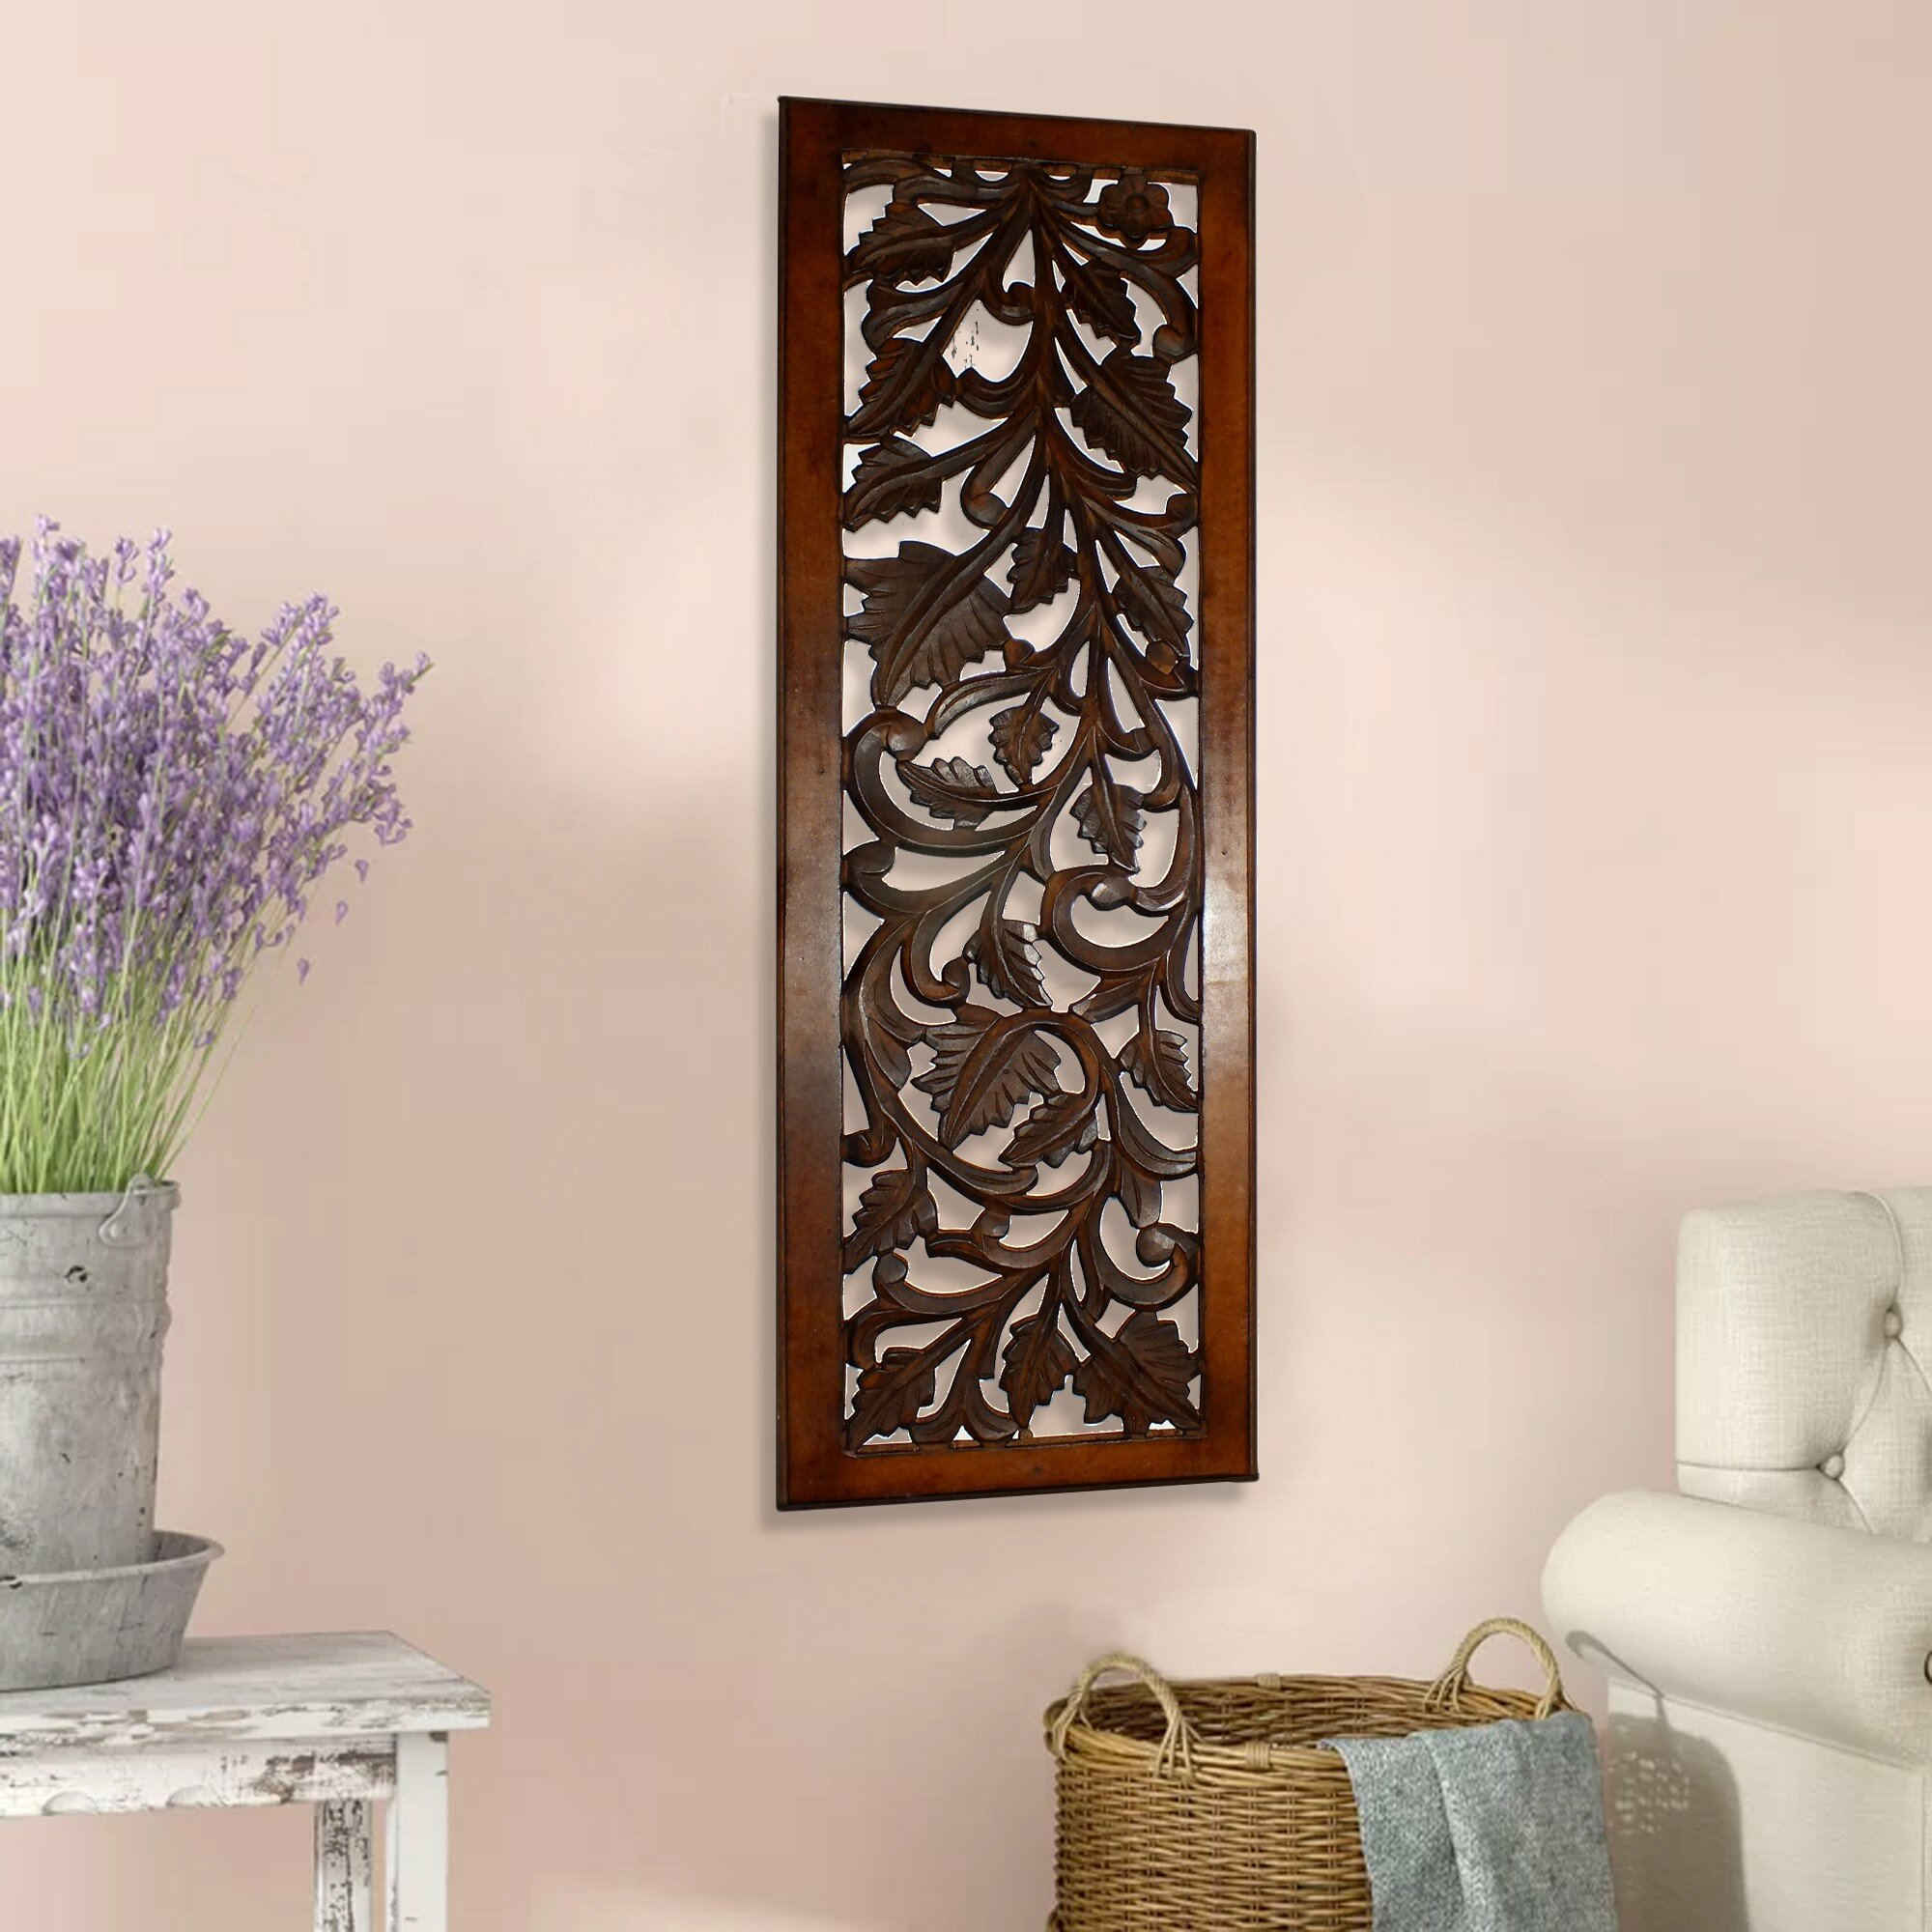 Mango Wood Panel With Leaves And Scroll Work Motif Wall Decor